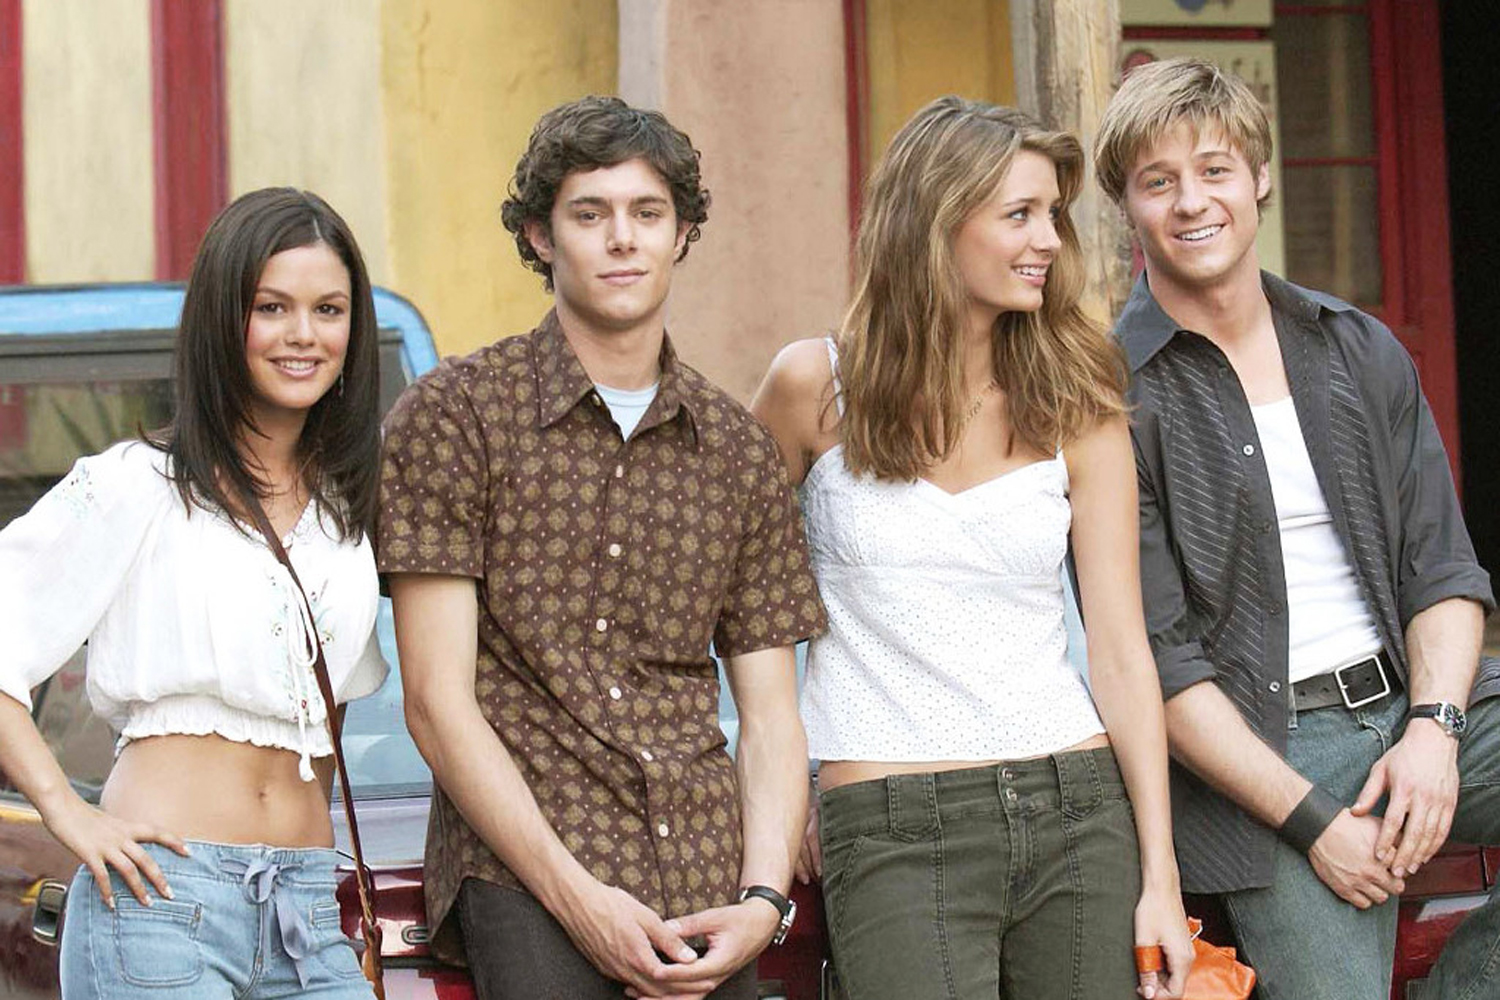 California Here We Come! Rumour Has It, 'The O.C.' Could Be Getting A Reboot